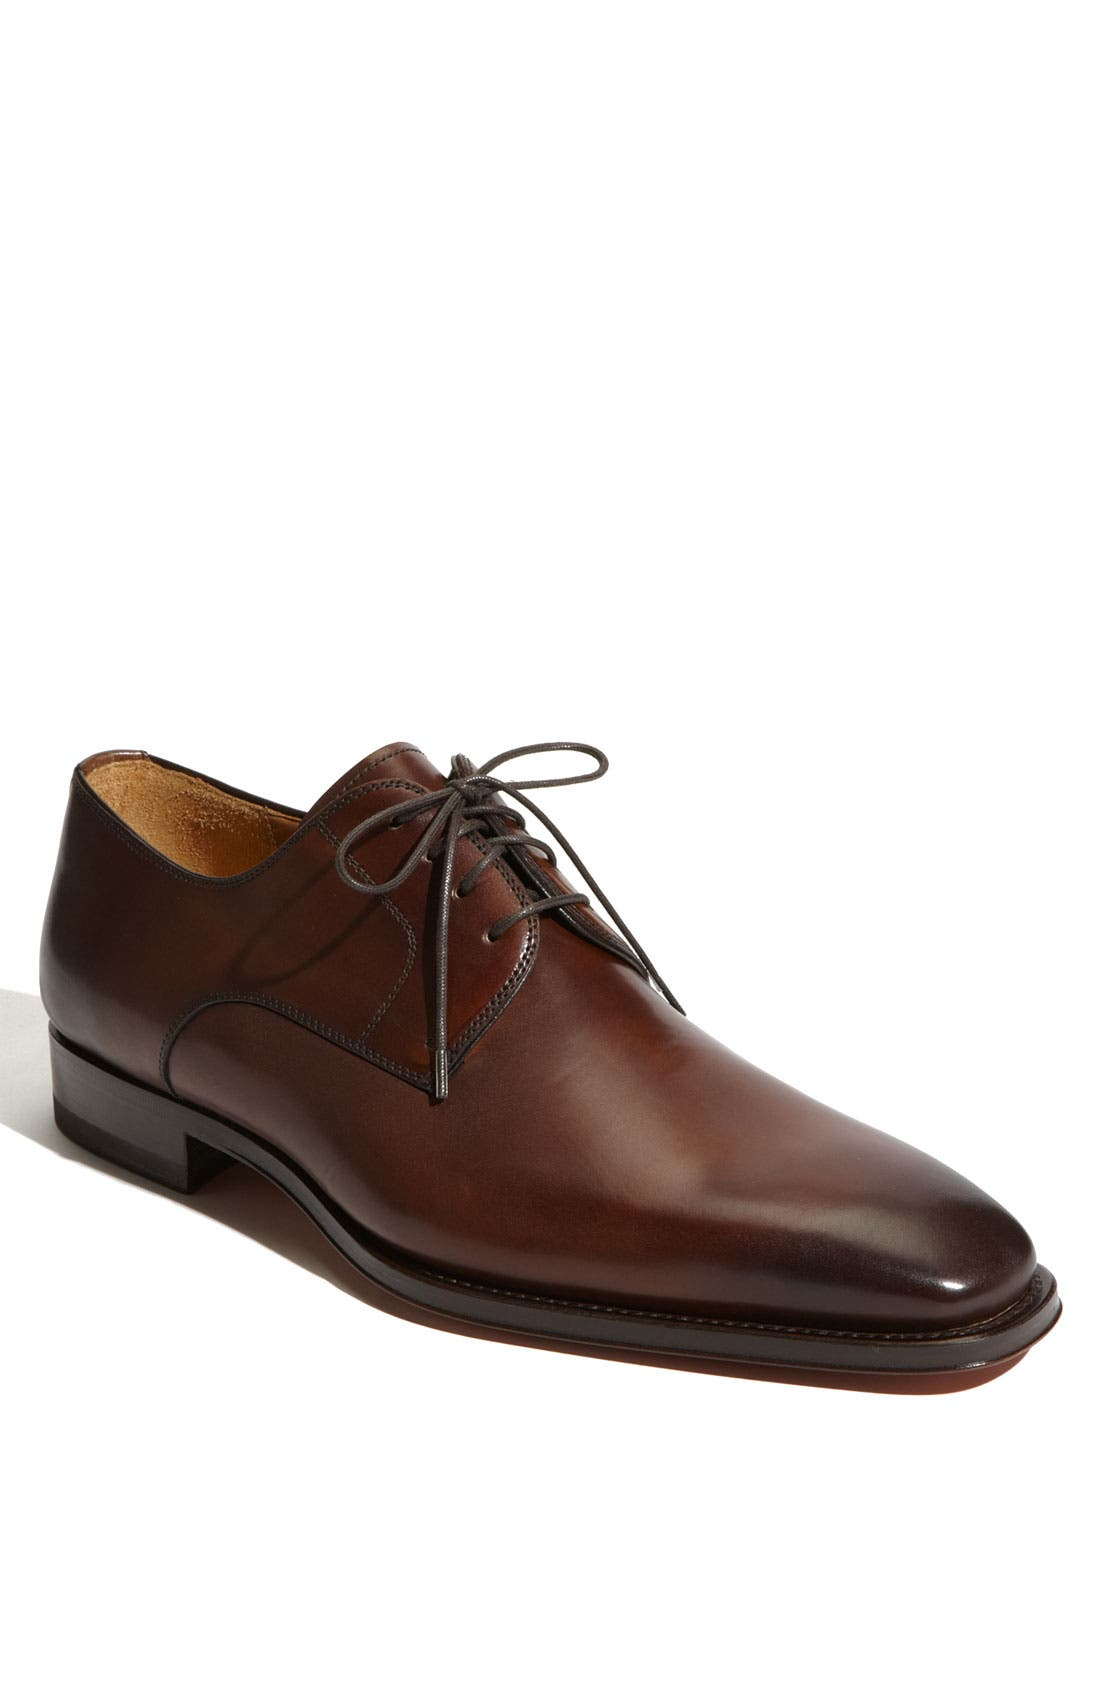 Magnanni 'Colo' Plain Toe Derby (Men)